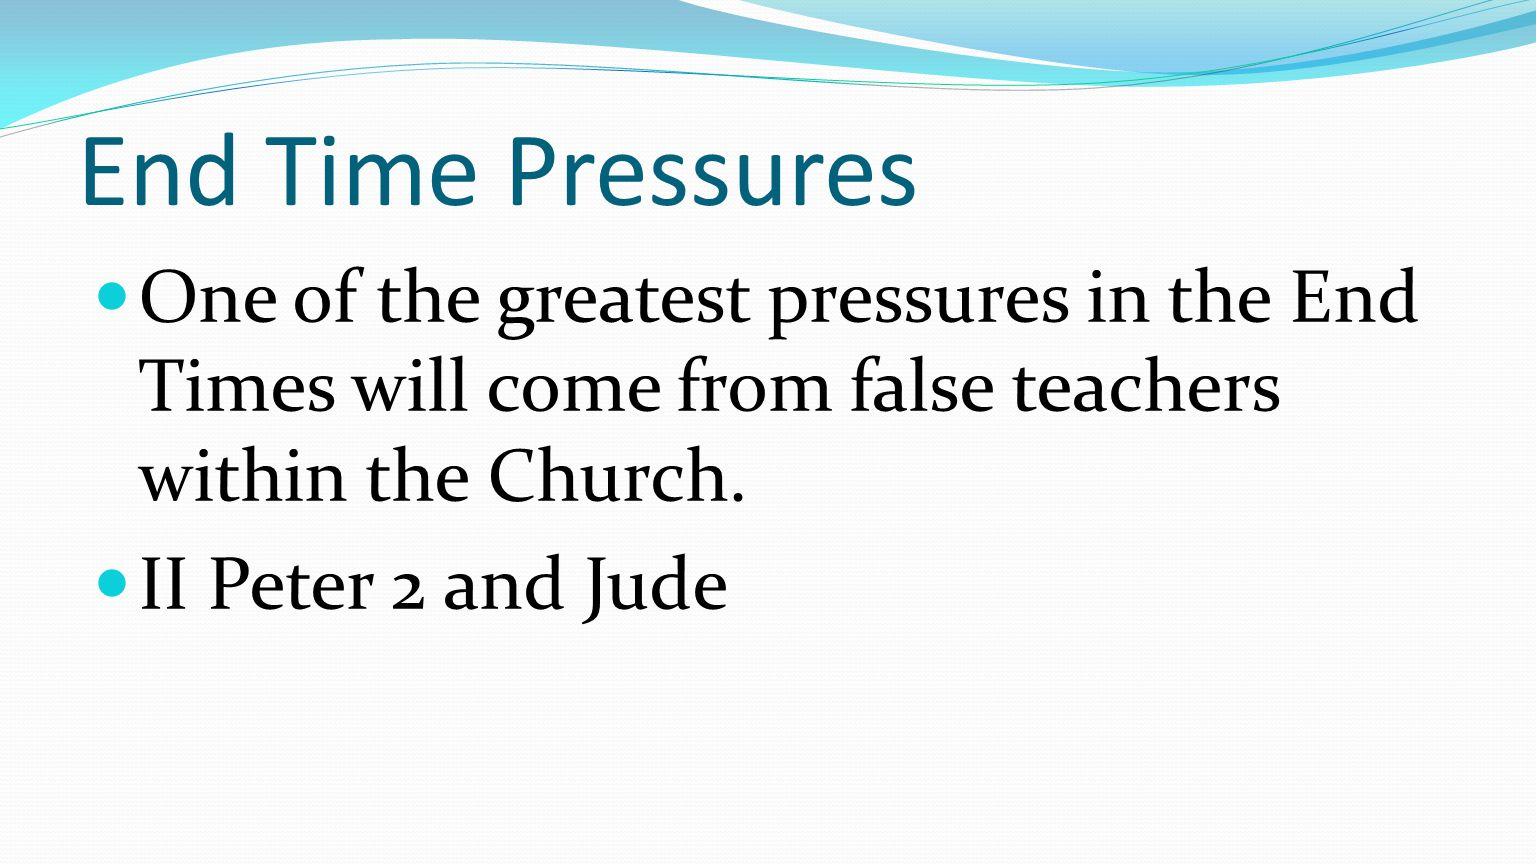 End Time Pressures One of the greatest pressures in the End Times will come from false teachers within the Church.